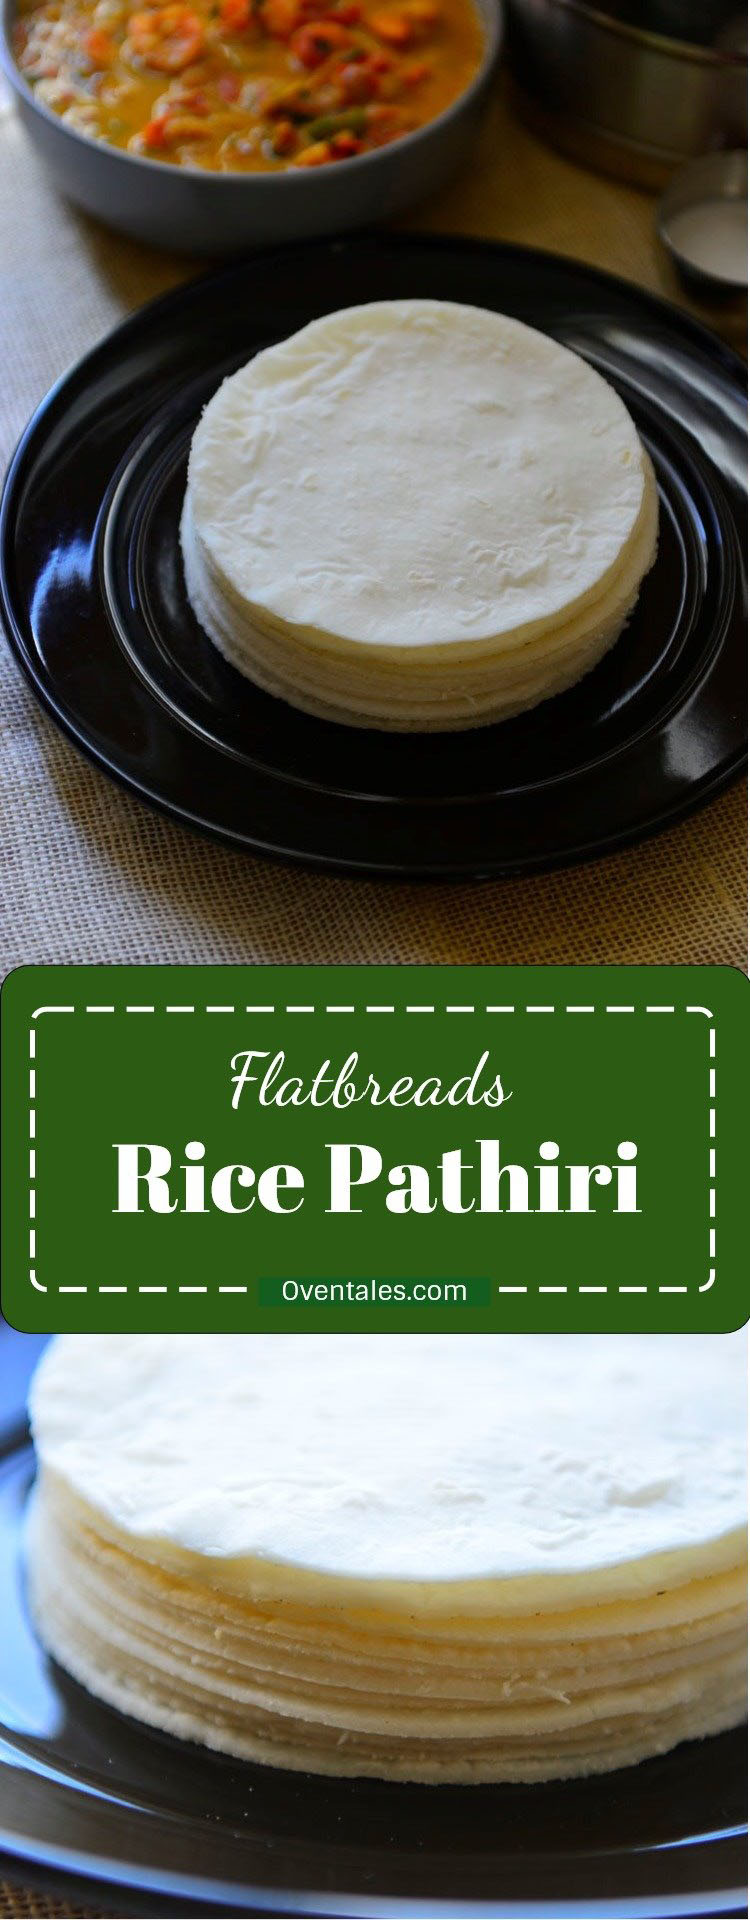 Rice Pathiri